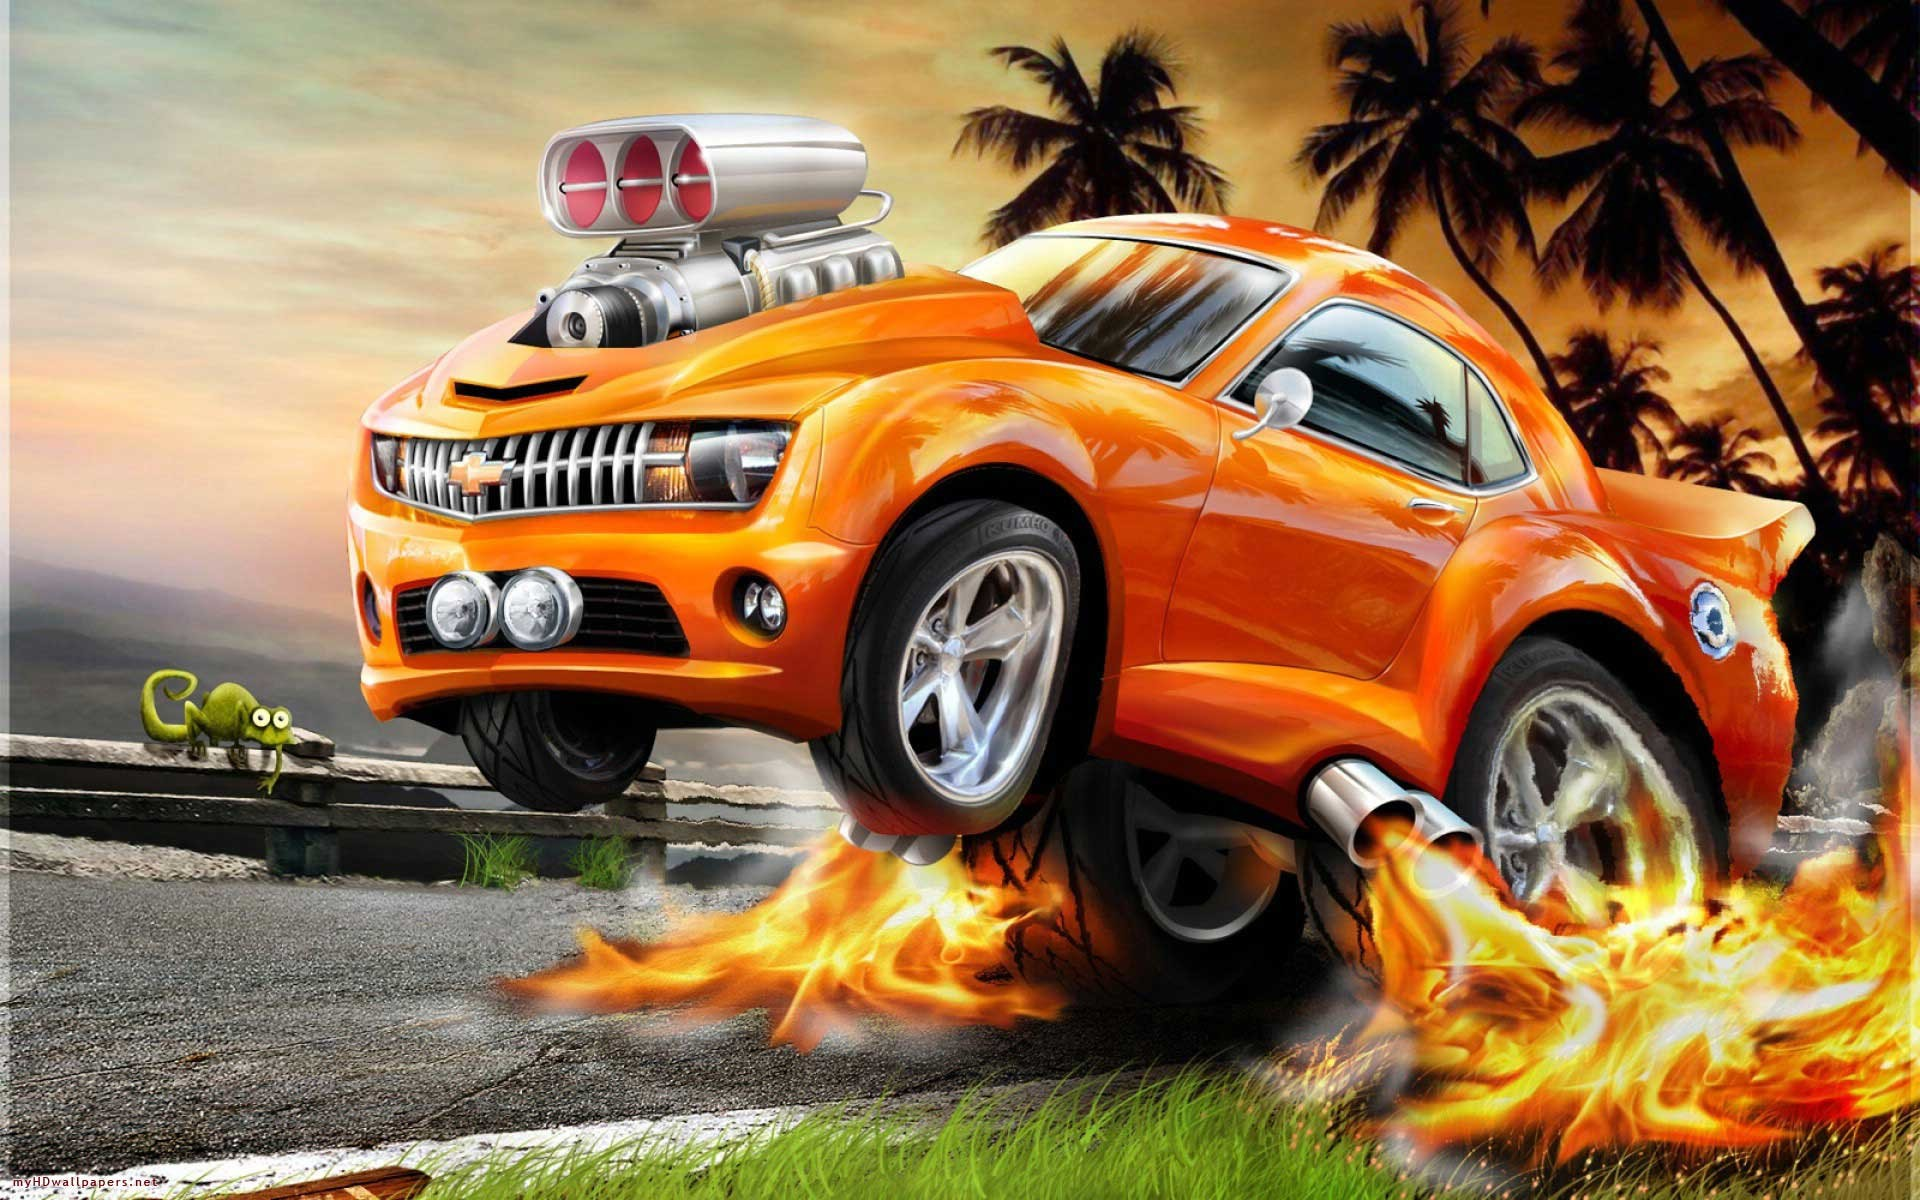 Wild animals are not creatures to be messed with, although there are many people in this world who think th. 3d Animated Car Wallpaper Data Src Download 3d Moving Hot Wheels Wallpaper 4k 1920x1200 Wallpaper Teahub Io